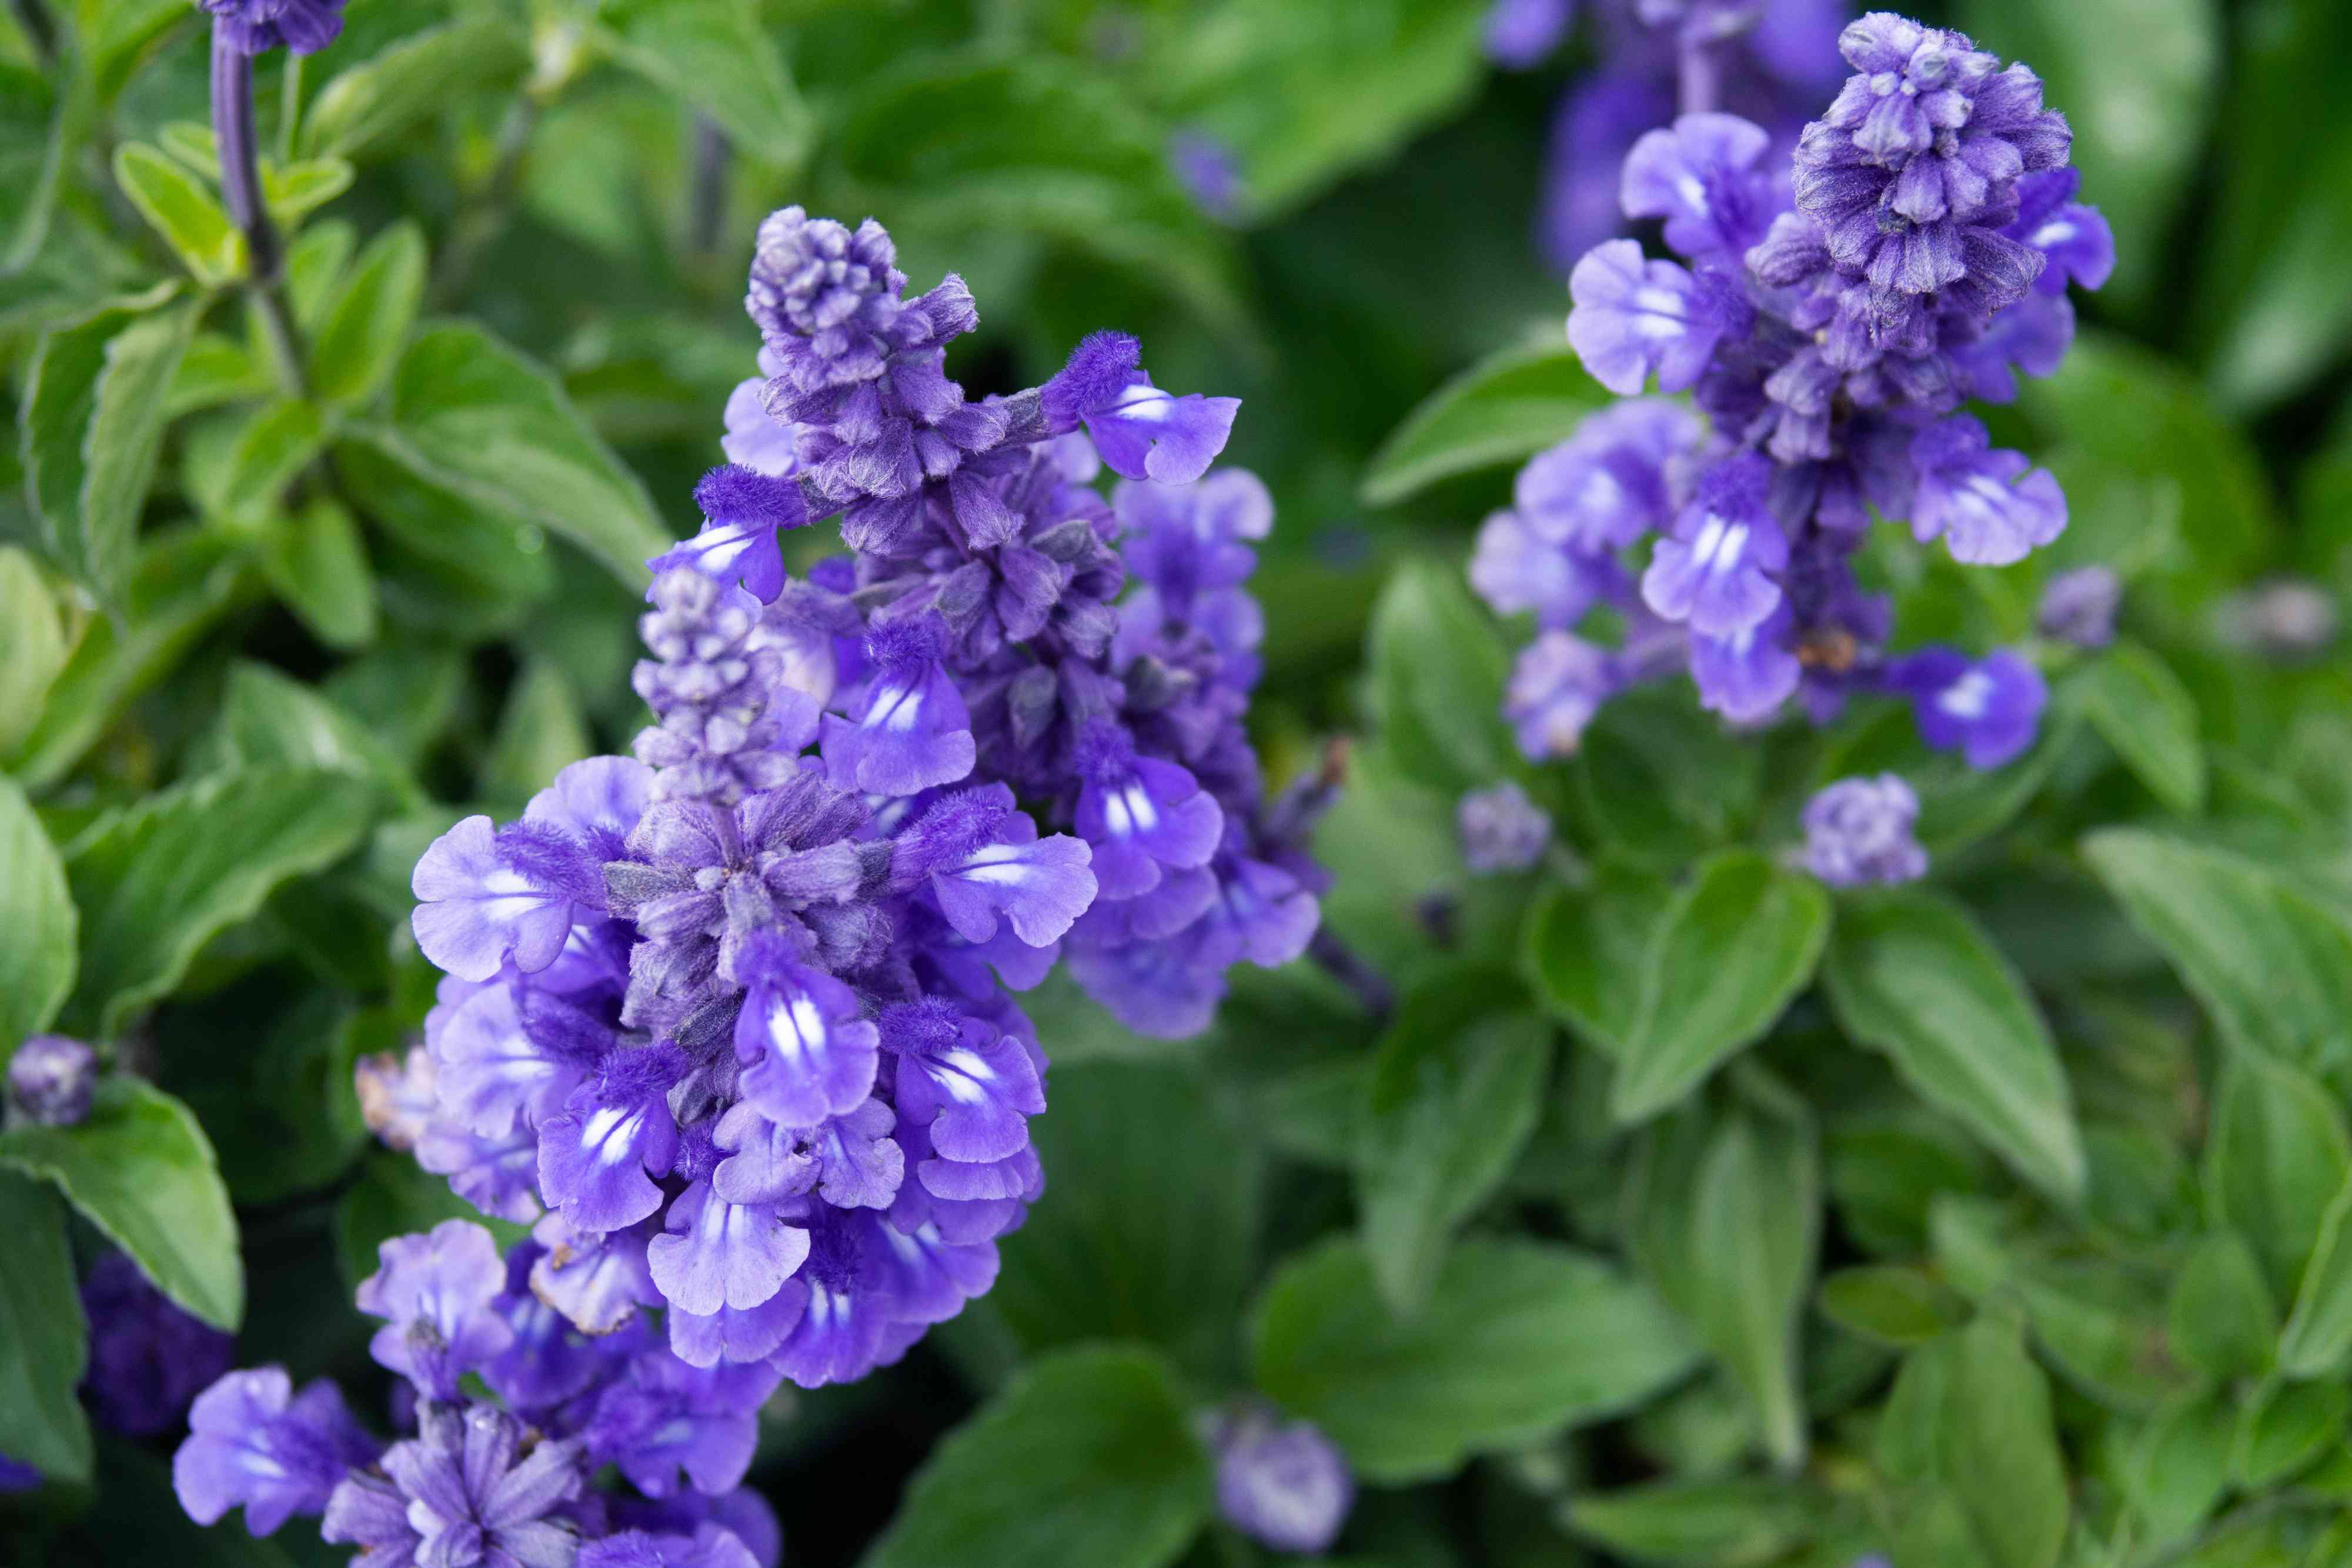 Victoria blue salvia plant with purple flower spikes surrounded by leaves closeup